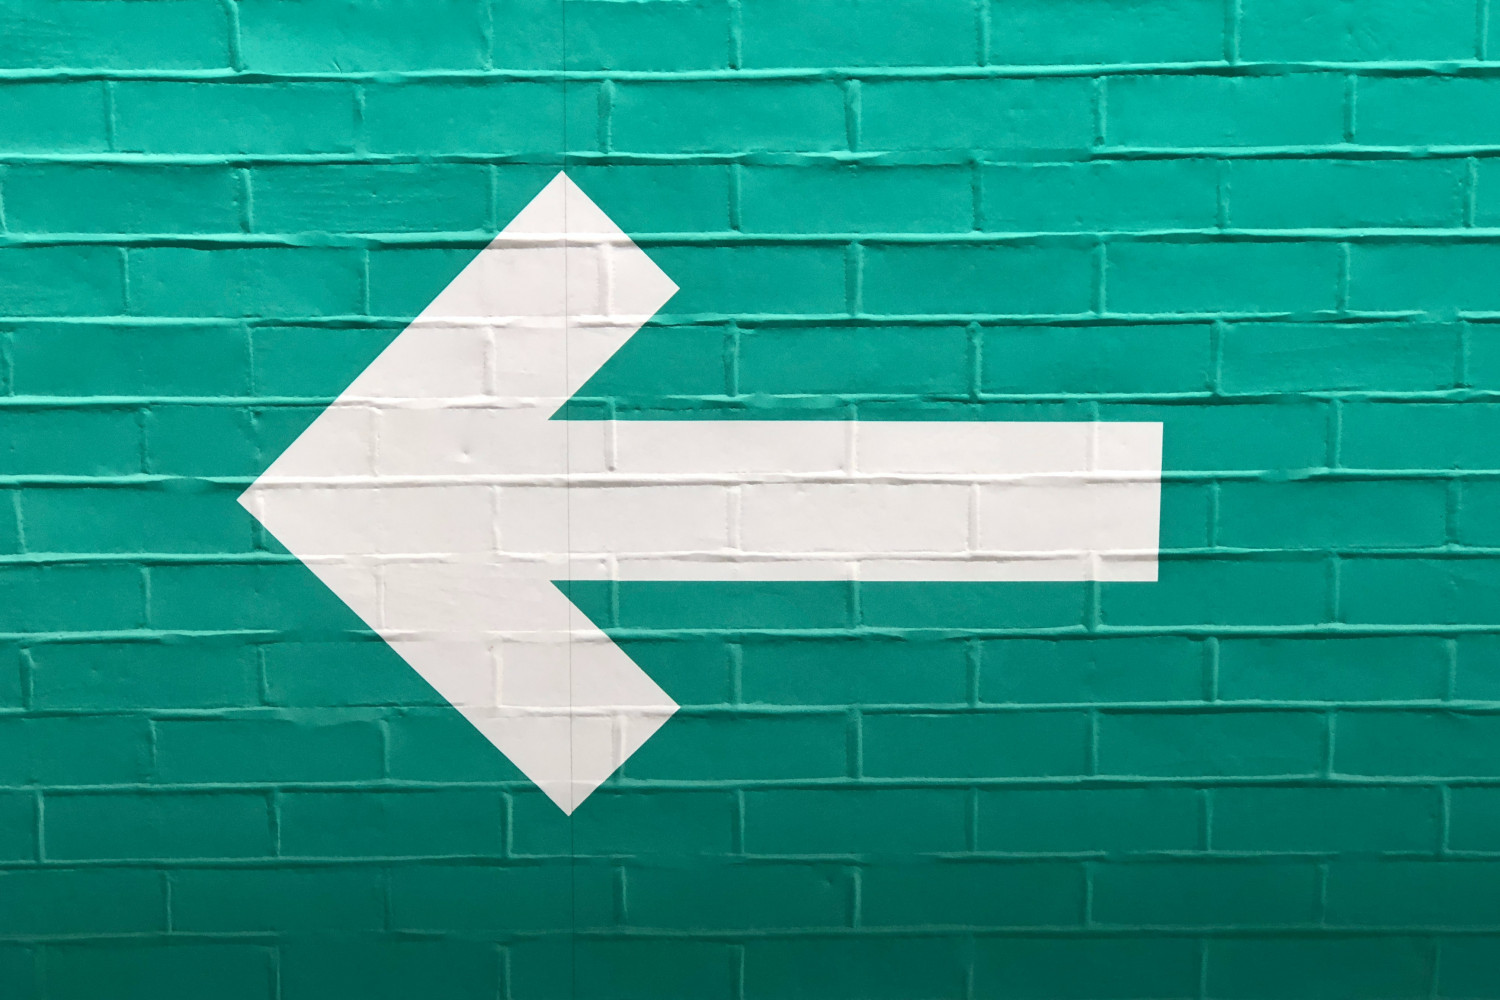 Image of a giant white arrow on a green painted brick wall